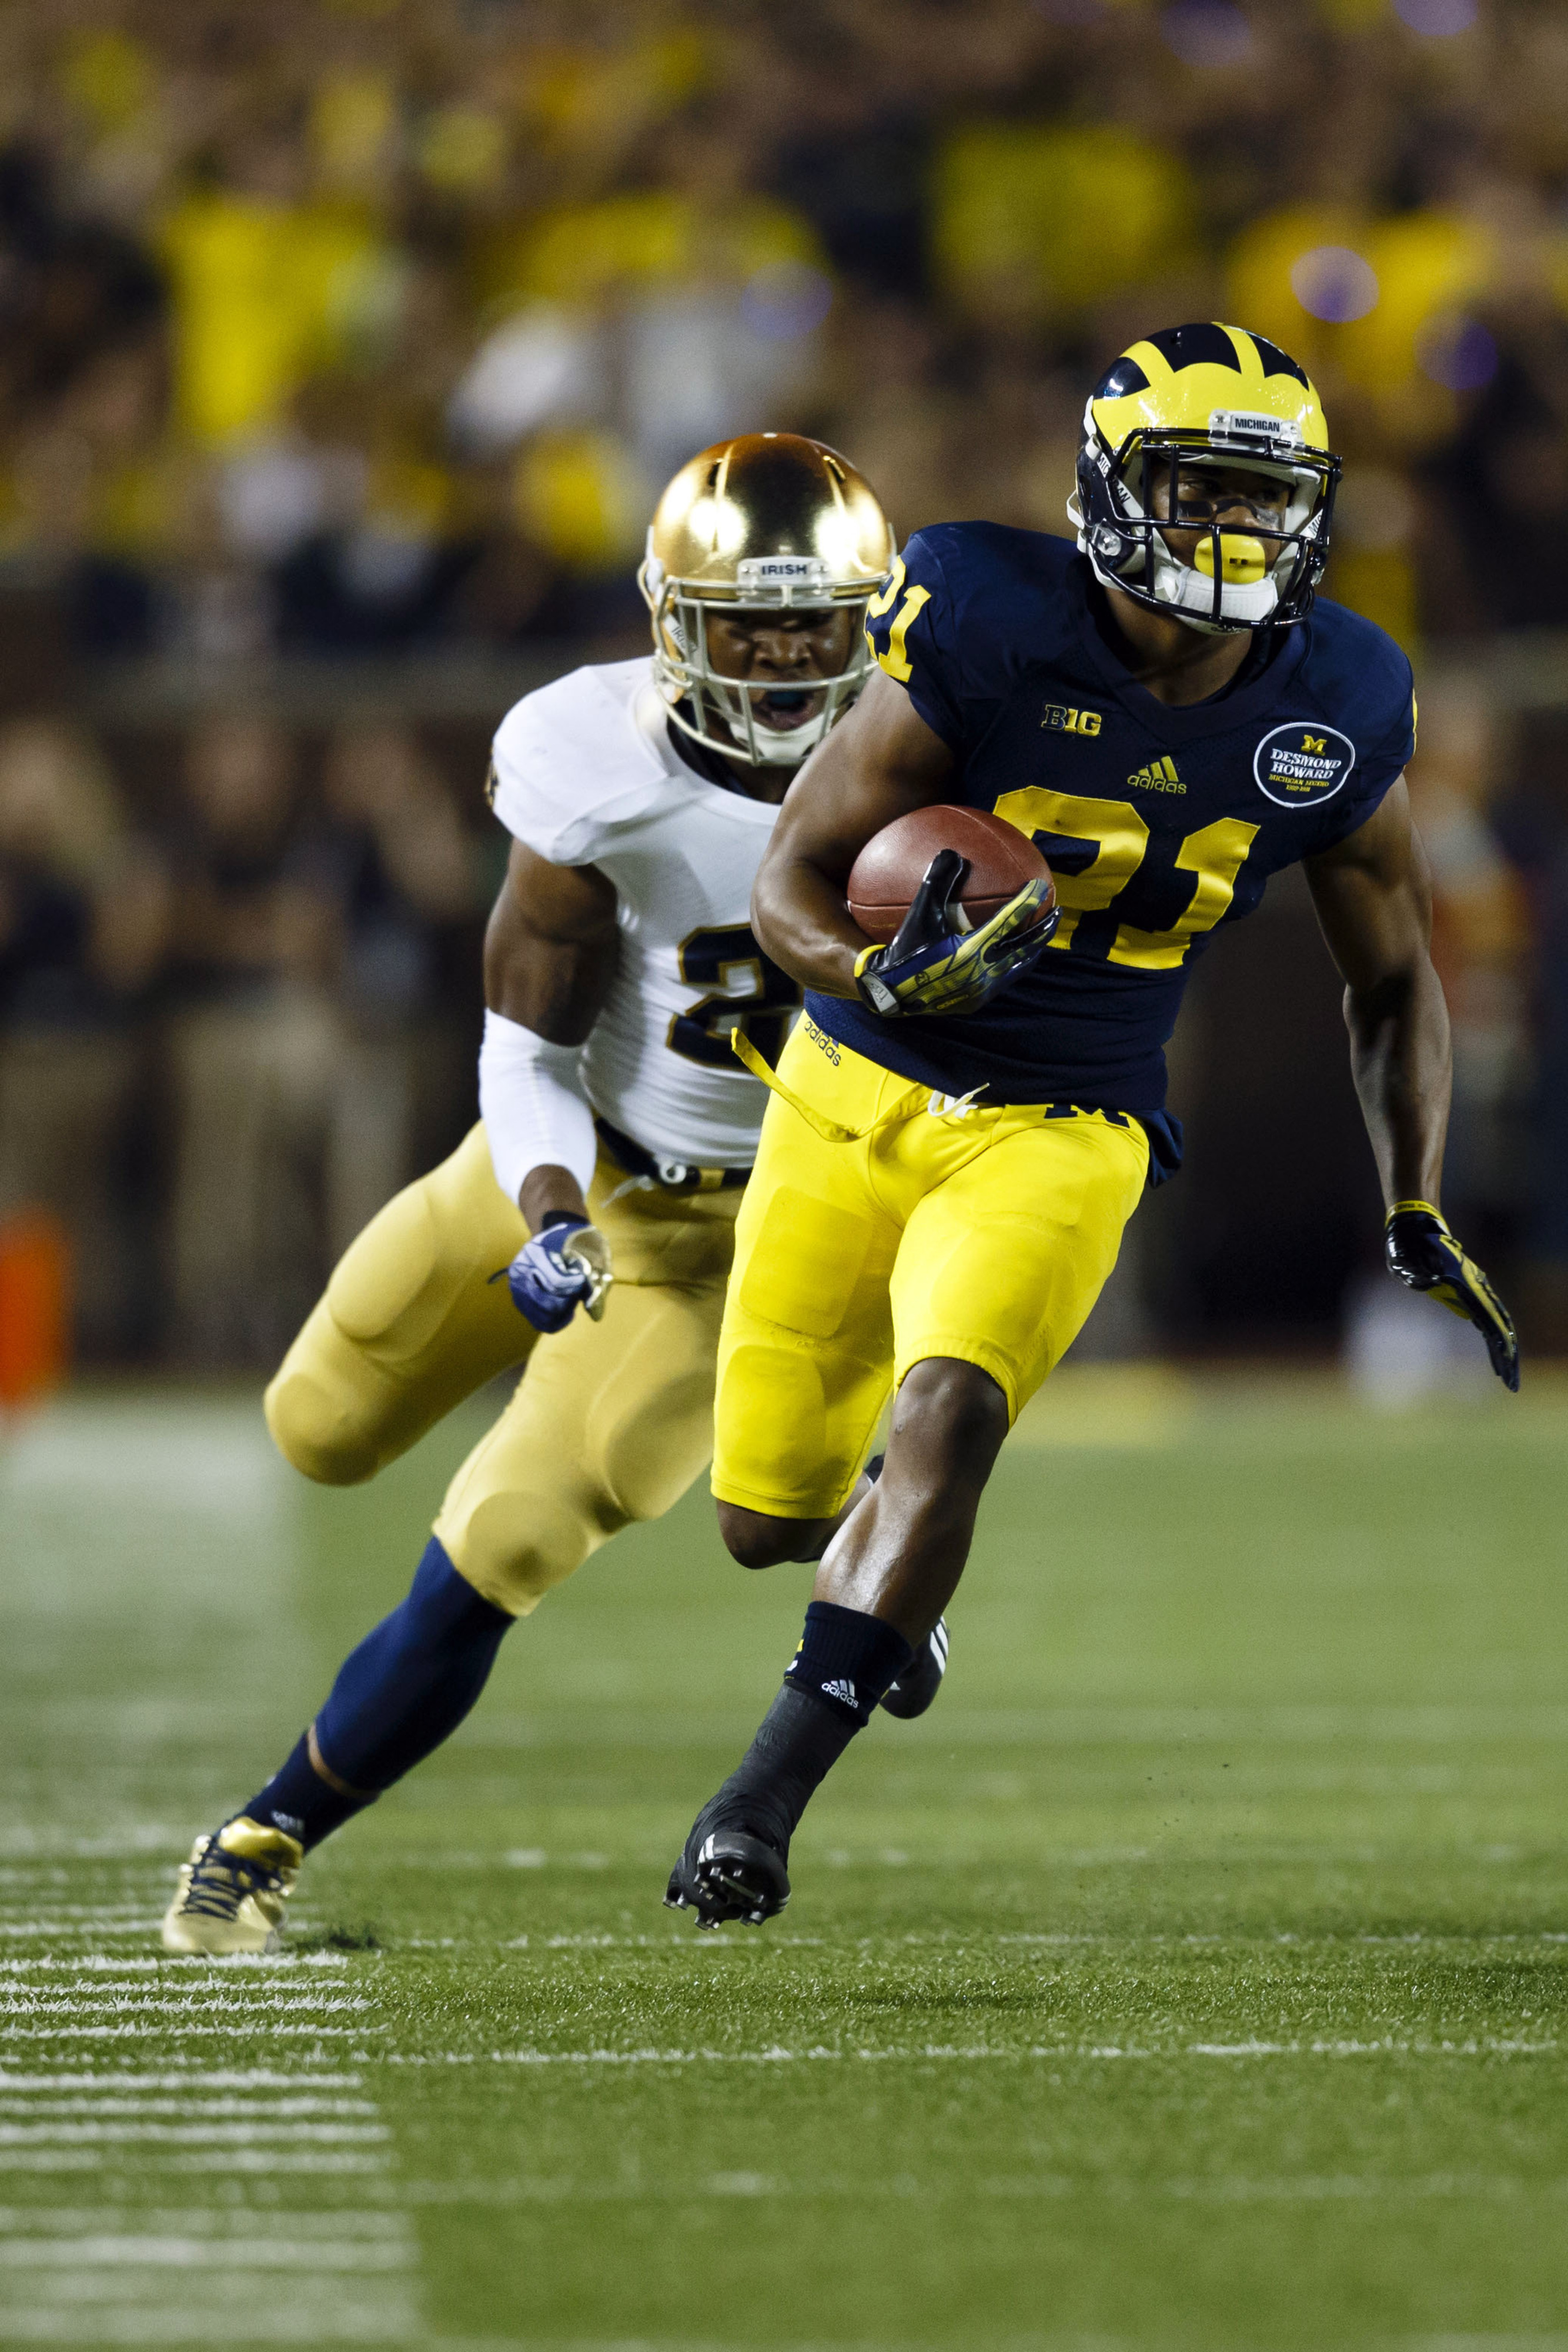 Michigan needs another receiver to go with star Jeremy Gallon